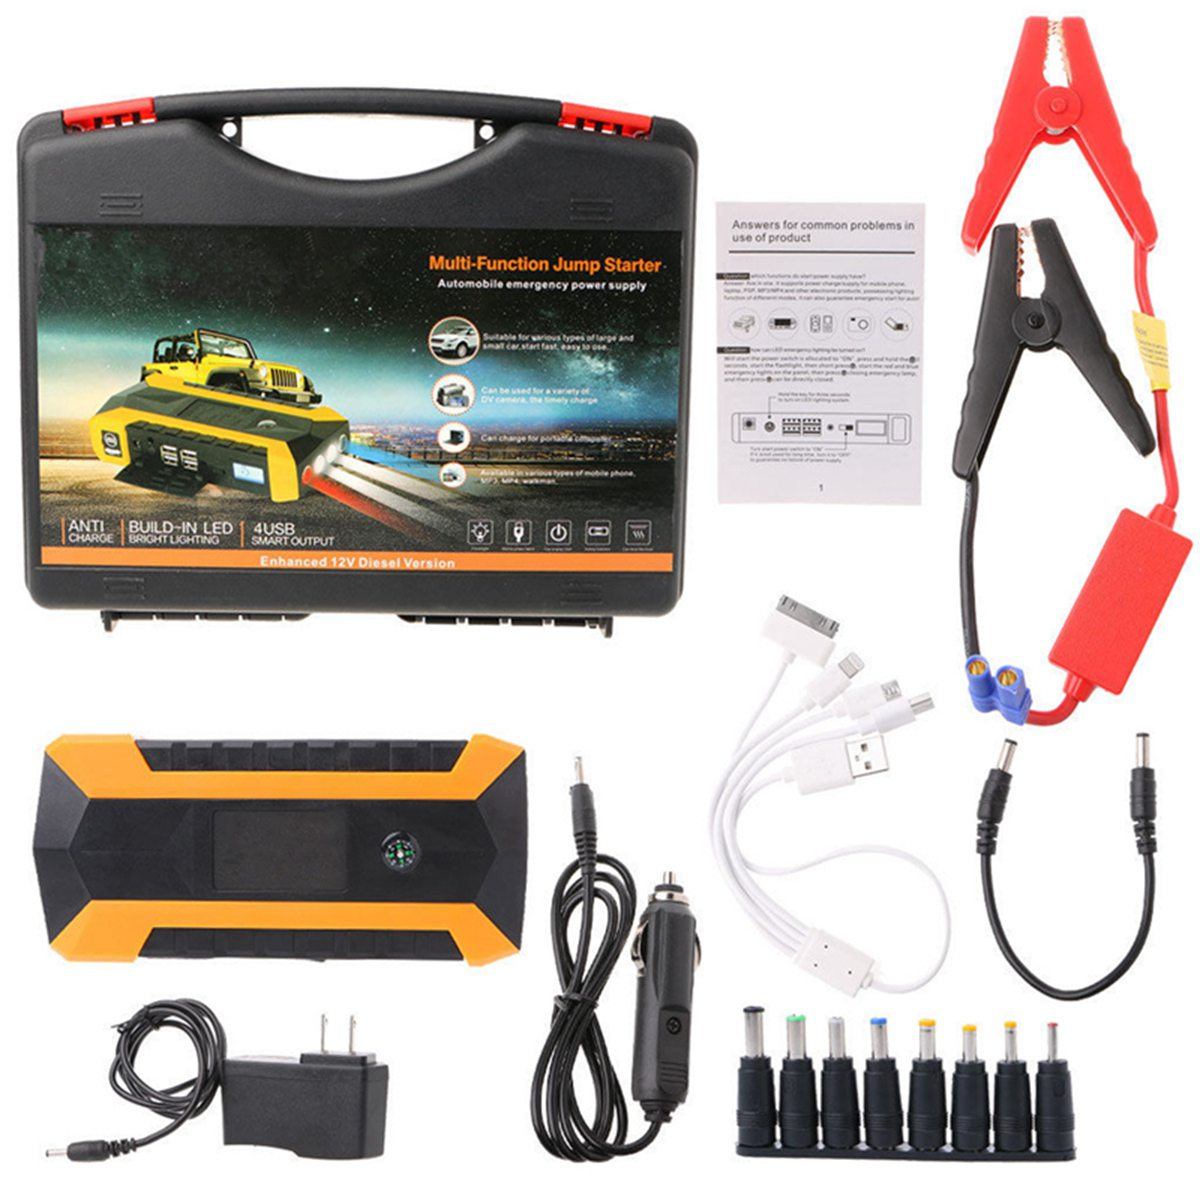 89800mAh Car Jump Starter 12V 4USB 600A Portable Car Battery Booster Charger Booster Power Bank Starting Device Car Starter new 12v 89800mah portable 4usb car jump starter power bank tool kit booster charger battery automobile emergency led light